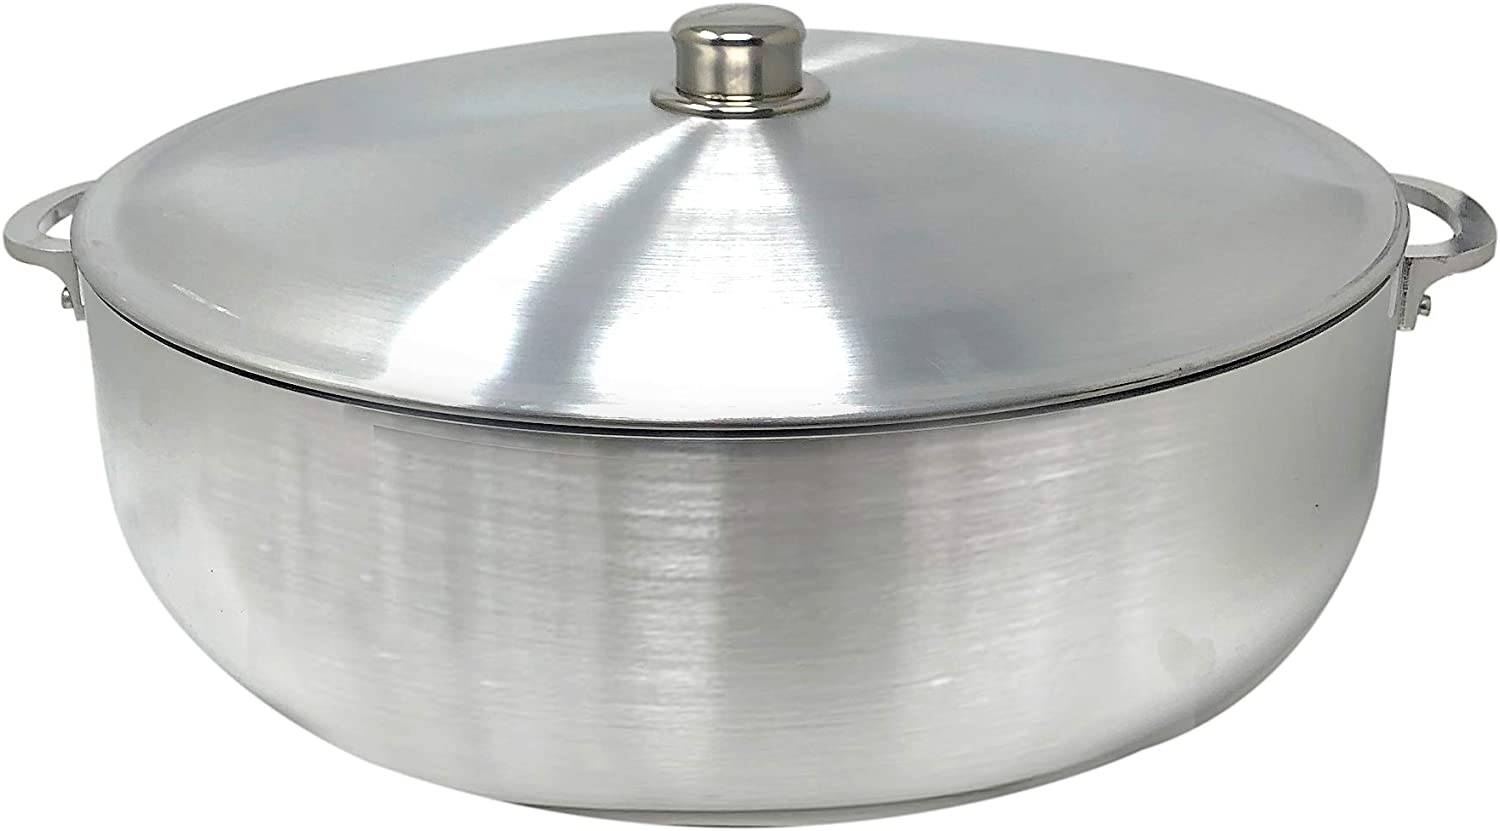 KITCHEN SENSE TRADITIONAL COLUMBIAN CAST ALUMINUM RICE POT CALDERO BY AMERICAN DREAM SILVER STOCK POTS WITH ALUMINUM LID -HEAVY GAUGE CALDERO DE ARROZ DUTCH OVEN (13 Quarts)